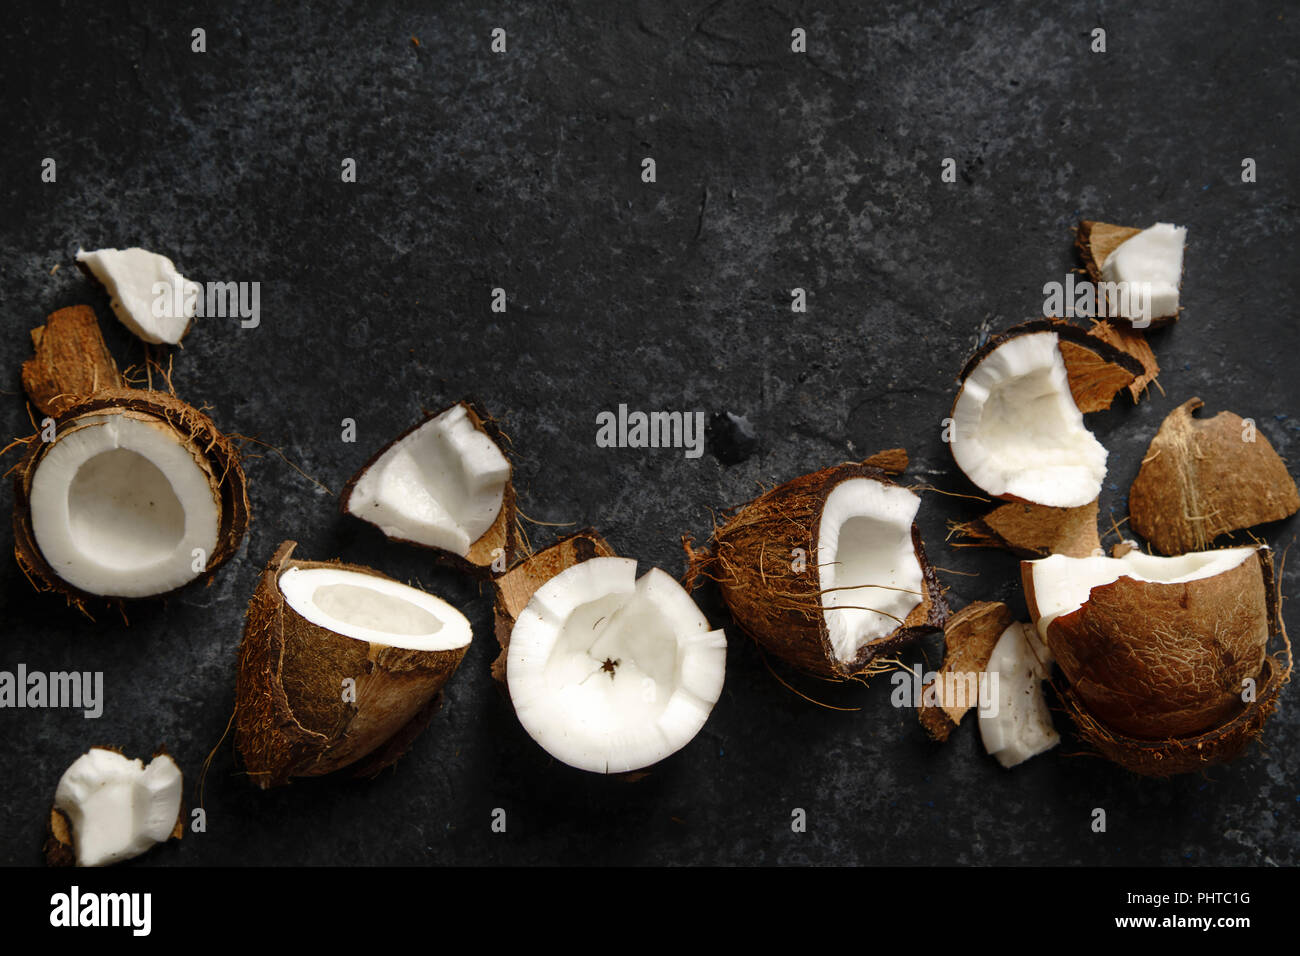 Cracked coconut arranged on dark textured background. Horizontal image with copy space. Soft light. - Stock Image